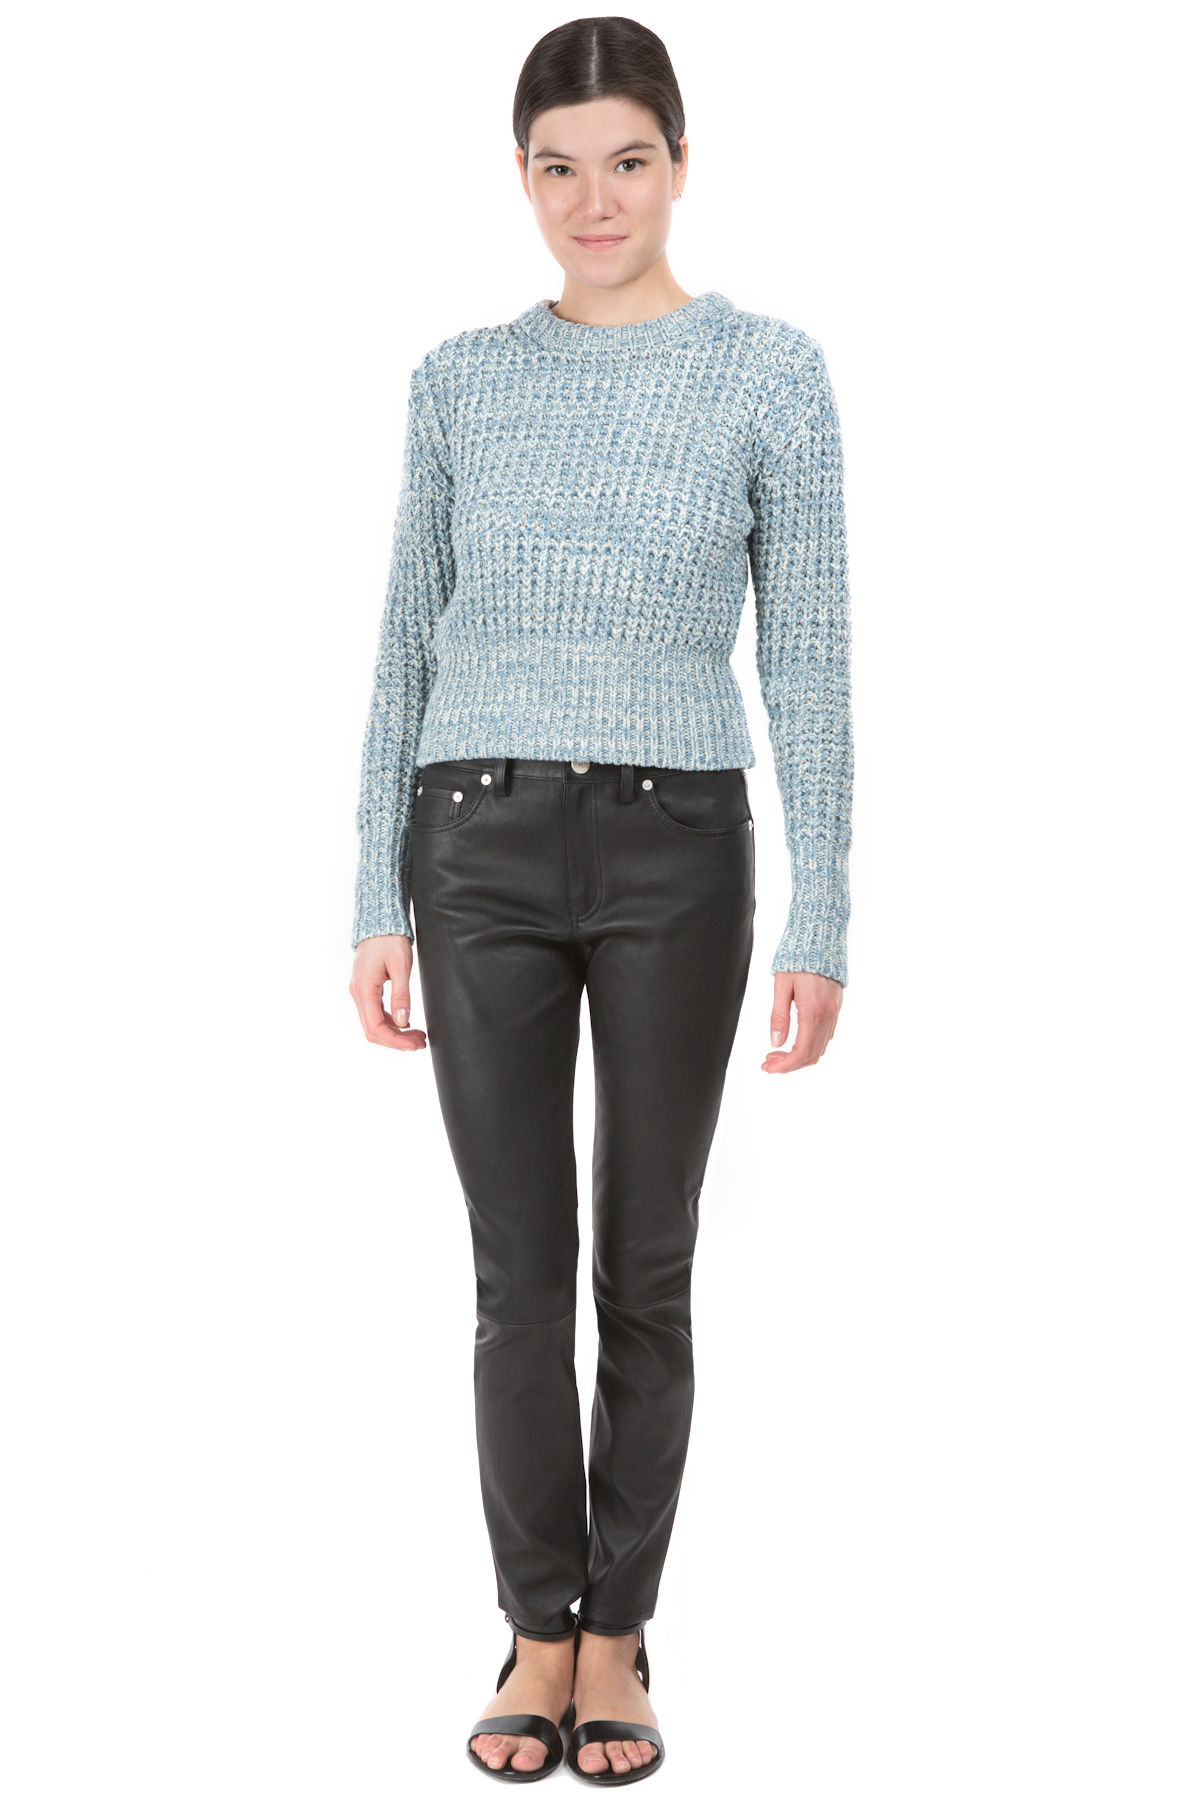 ACNE STUDIOS LIA TWIST KNIT SWEATER - WOMEN - TOPS - SWEATERS & KNITS - ACNE STUDIOS